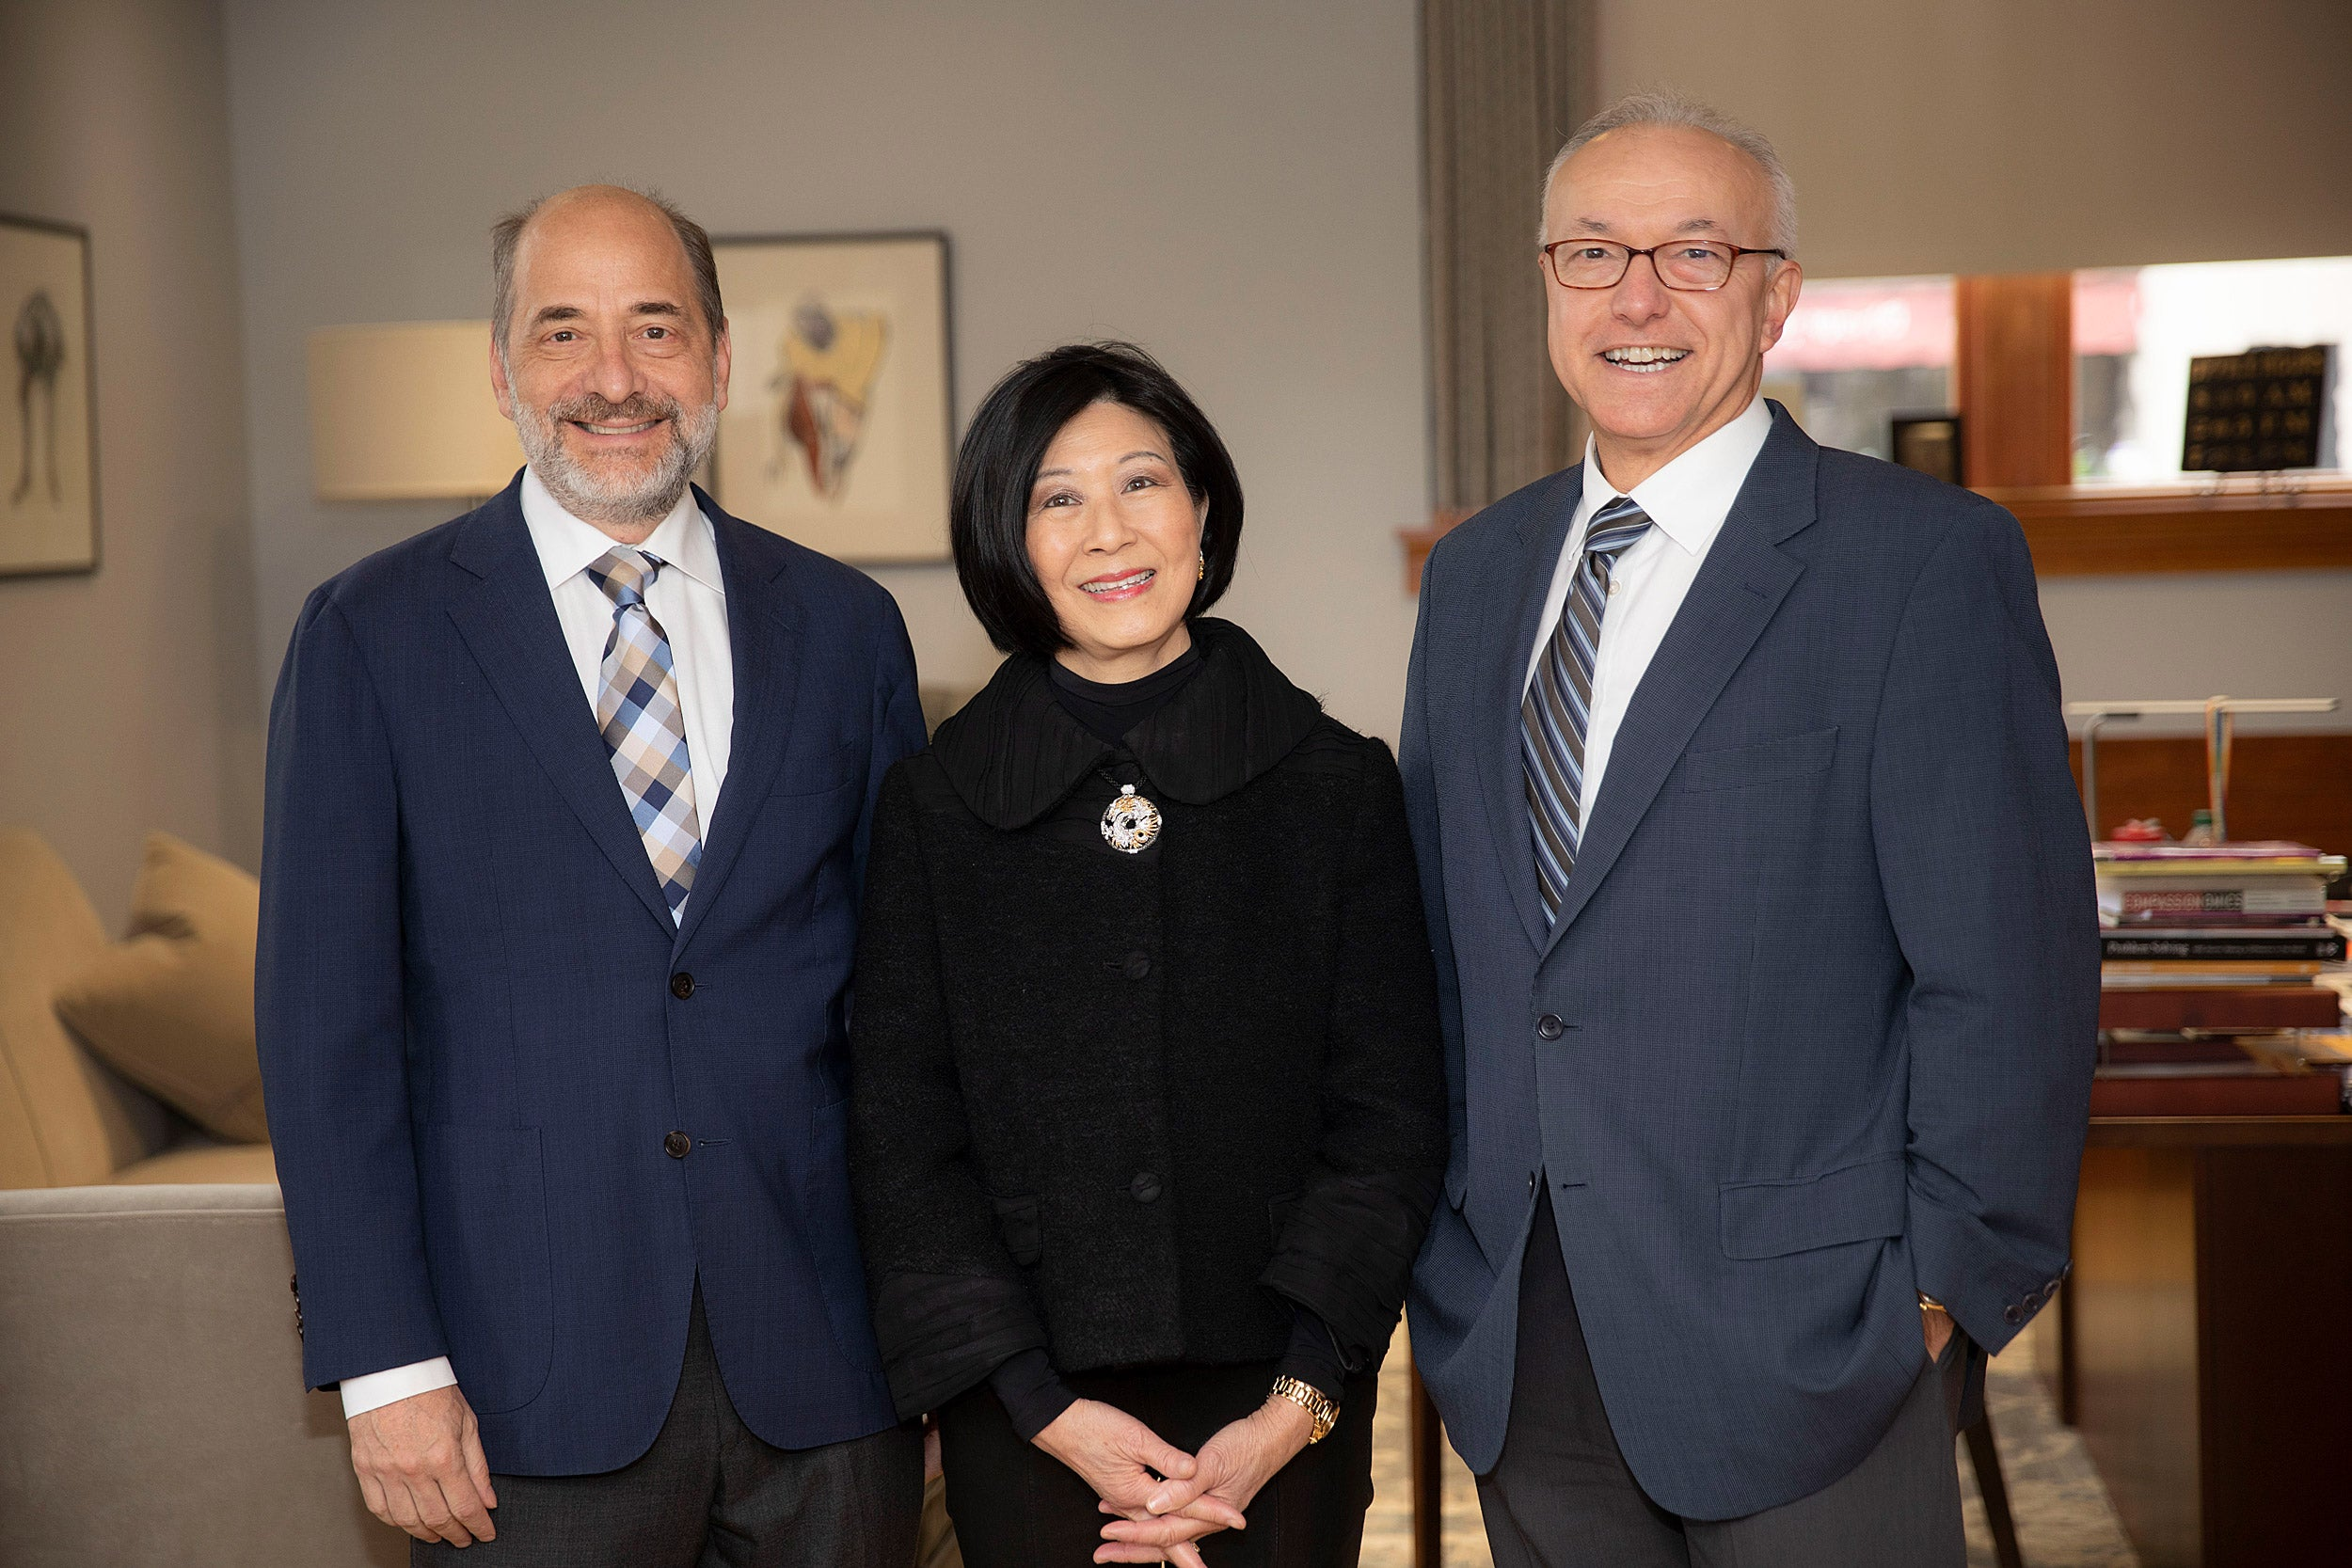 Professor Mike Greenberg, (from left) Lisa Yang, and Dean George Daley meet in Gordon Hall.